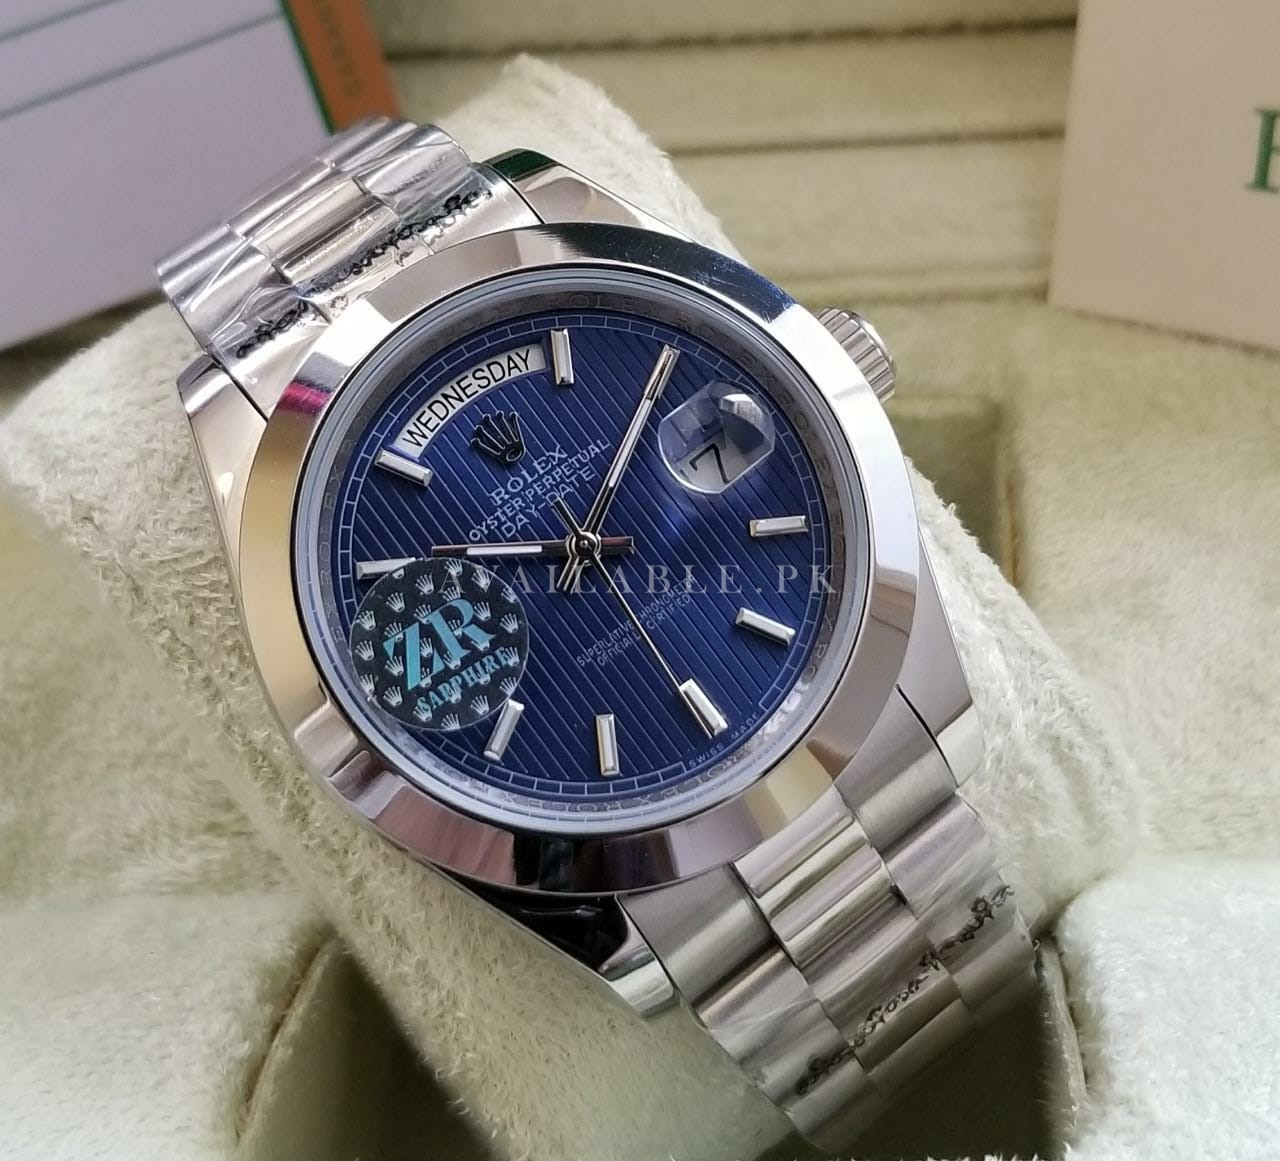 Rolex Oyster Perpetual Day Date Blue Dial His Watch